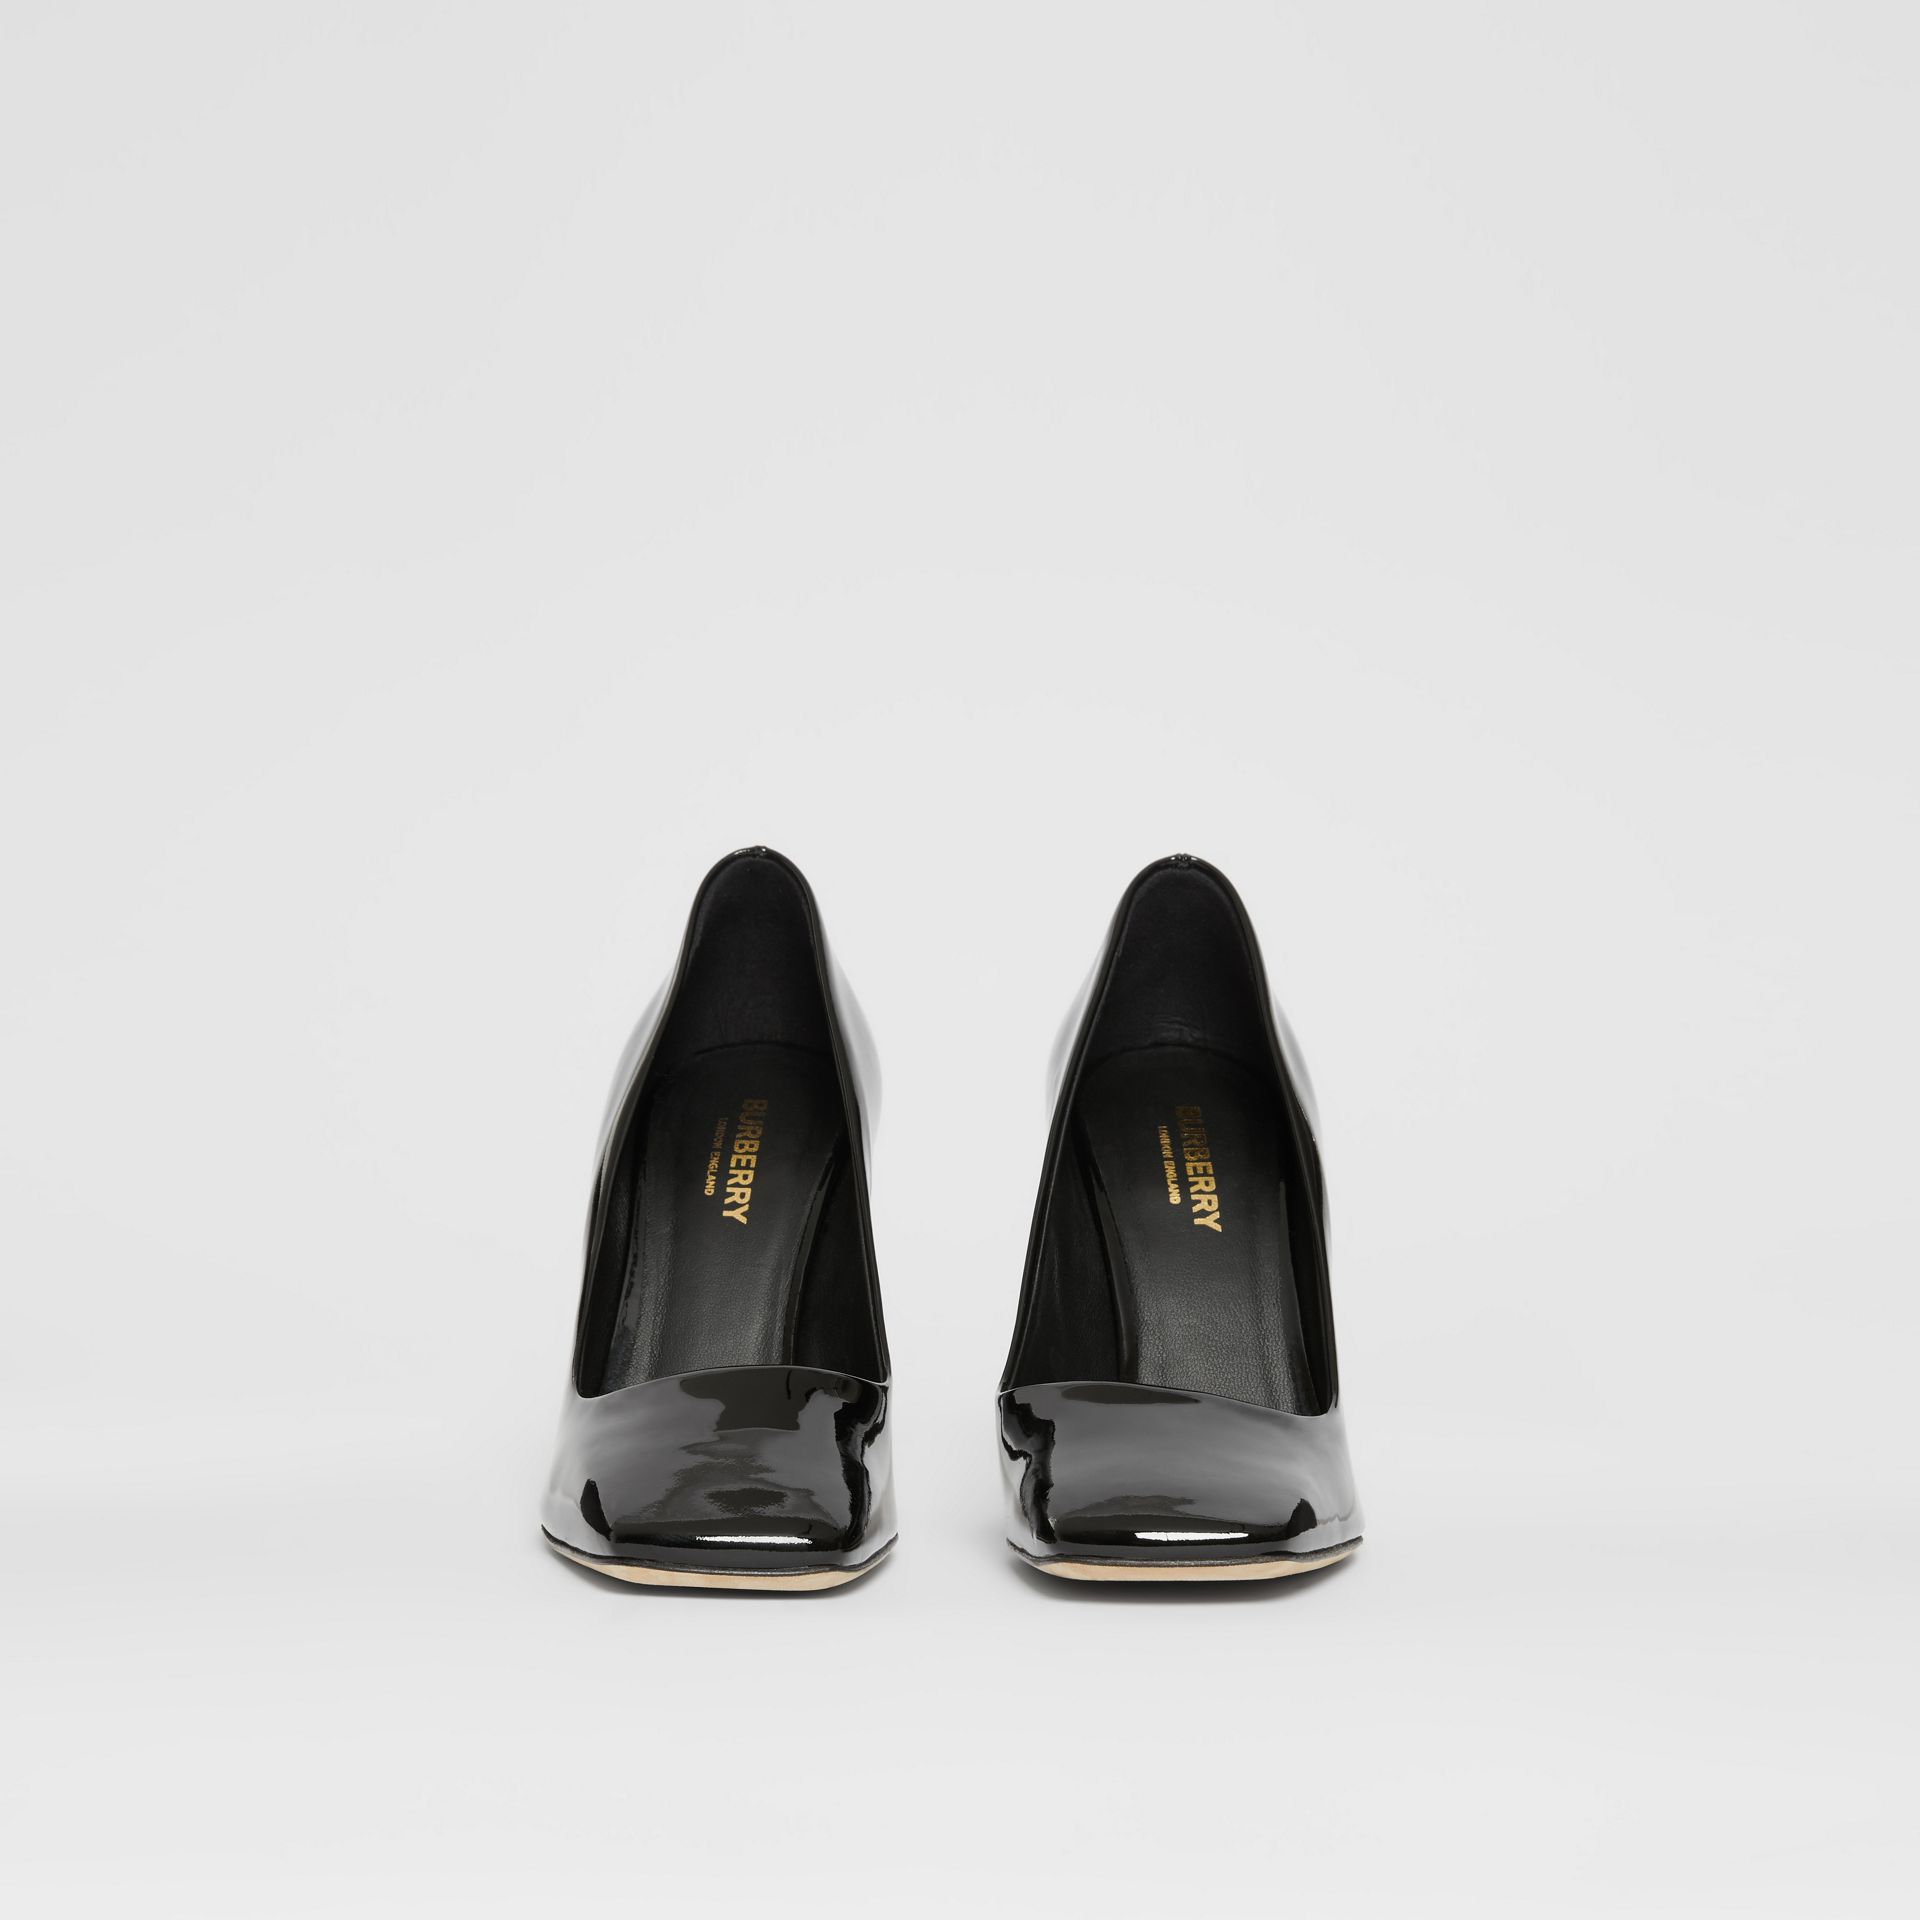 D-ring Detail Patent Leather Square-toe Pumps in Black - Women | Burberry - gallery image 3